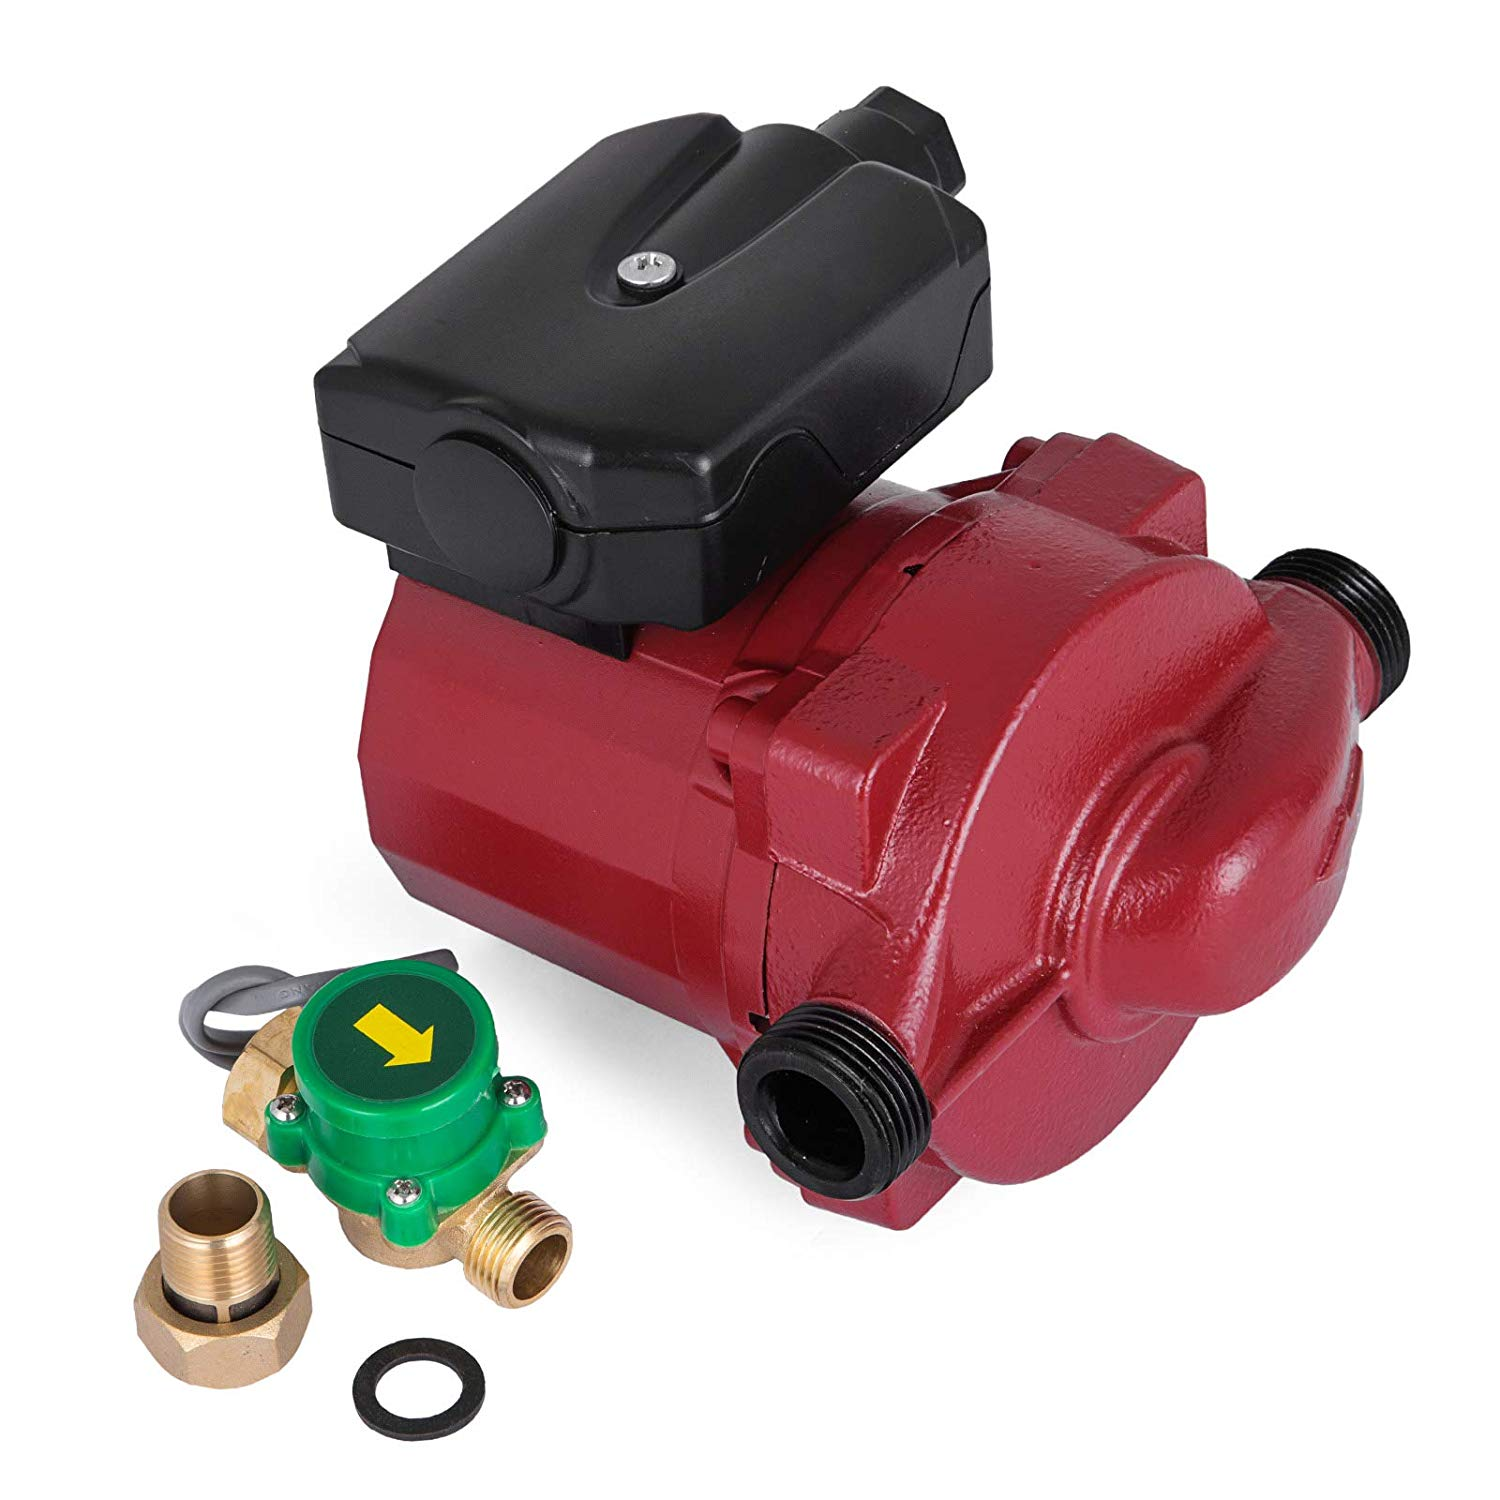 Happibuy 3/4 inch Hot Water Circulation Pump LPS20-12 Hot Water Circulating Pump Red Water Circulation Pump for Solar Heater Systems with US Plug and Flow Switch